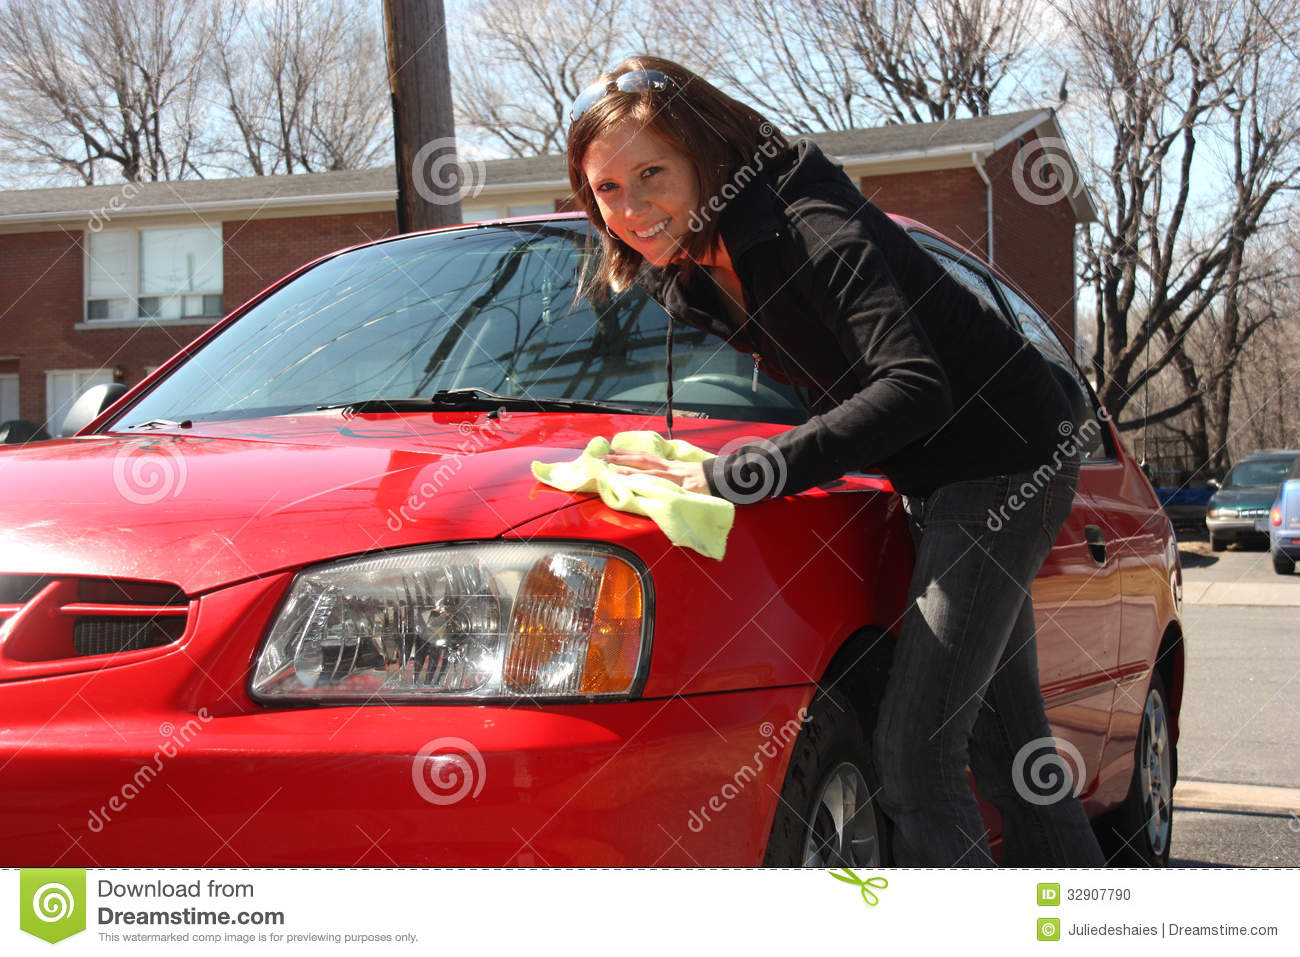 Girl Washing Red Car Outdoor on Car Wax Red